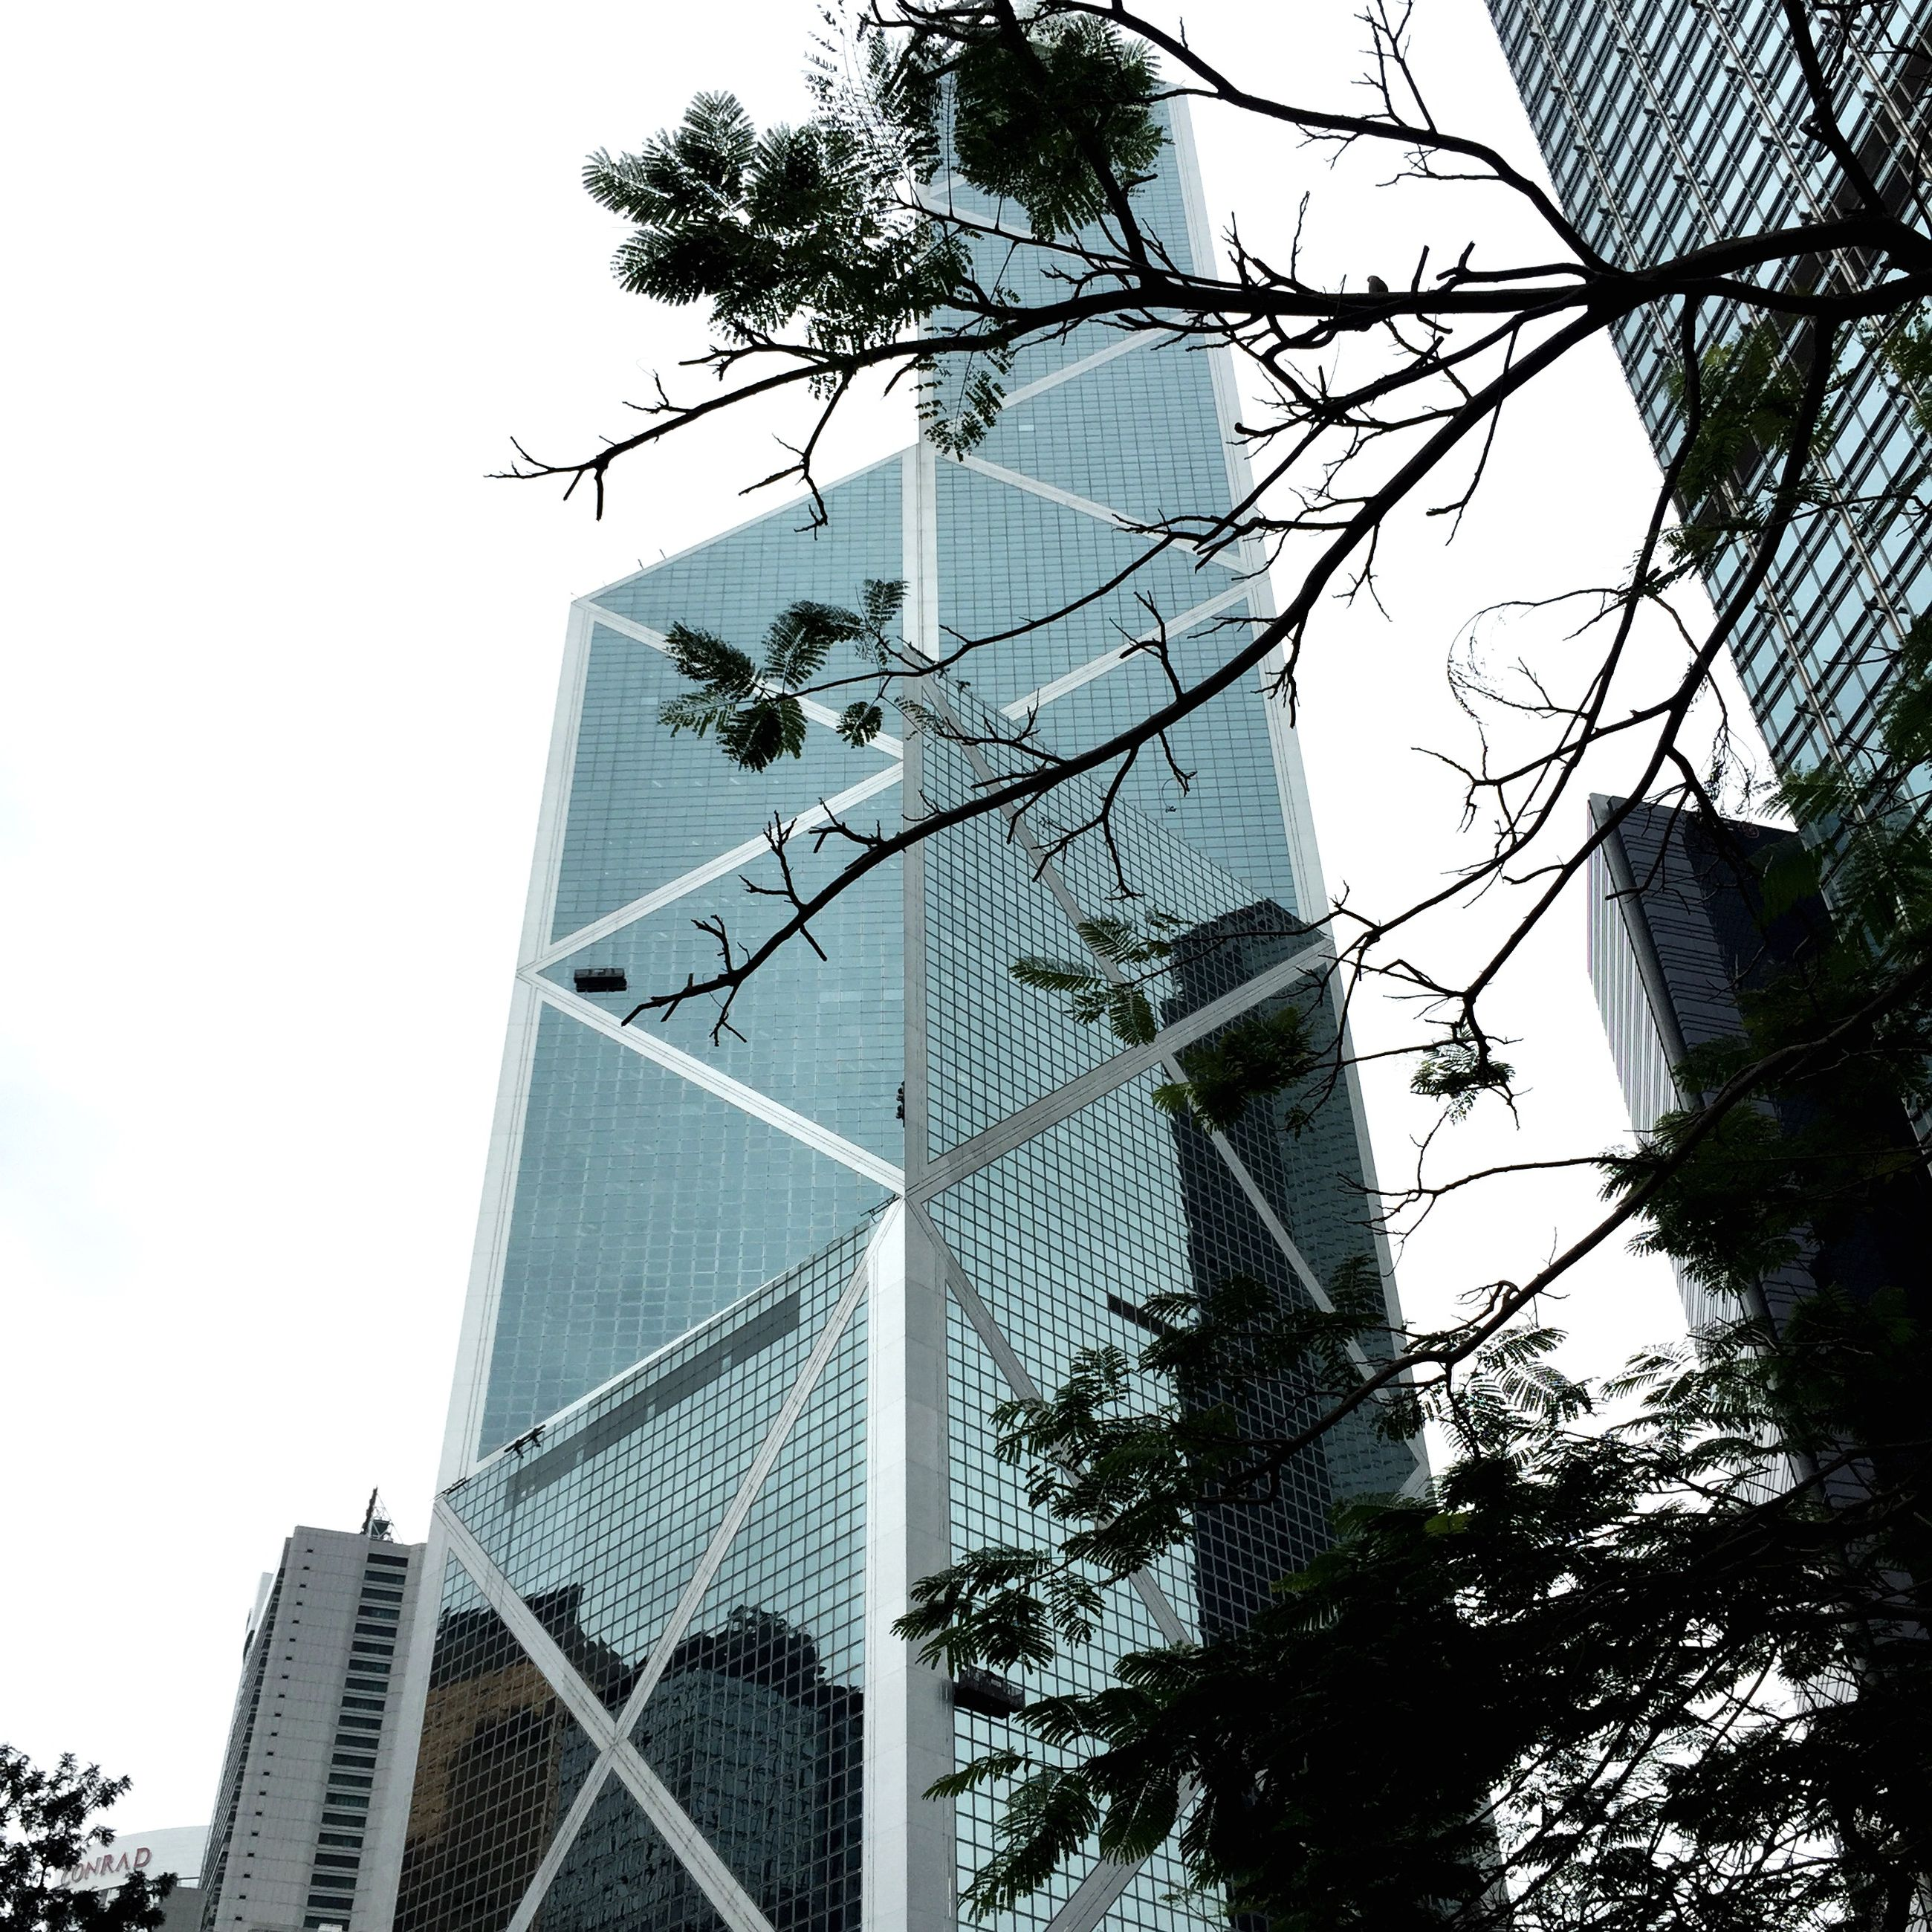 architecture, low angle view, built structure, building exterior, skyscraper, tall - high, tower, modern, city, office building, clear sky, capital cities, tree, travel destinations, famous place, glass - material, tall, international landmark, building, sky